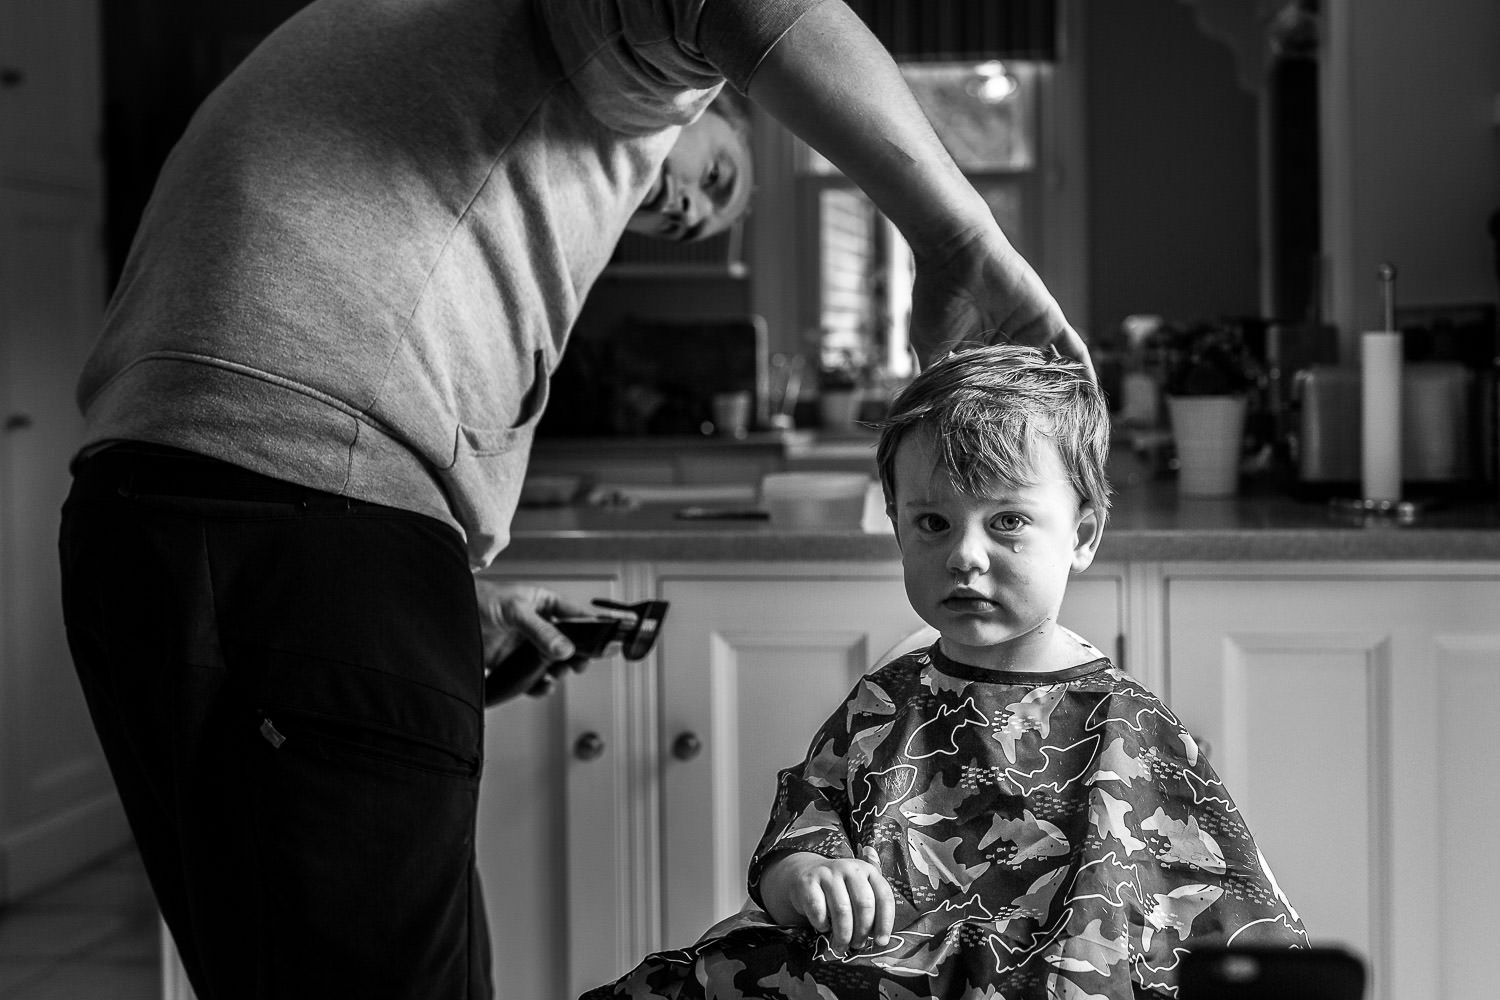 Little boy sheds a tear as father cuts his hair